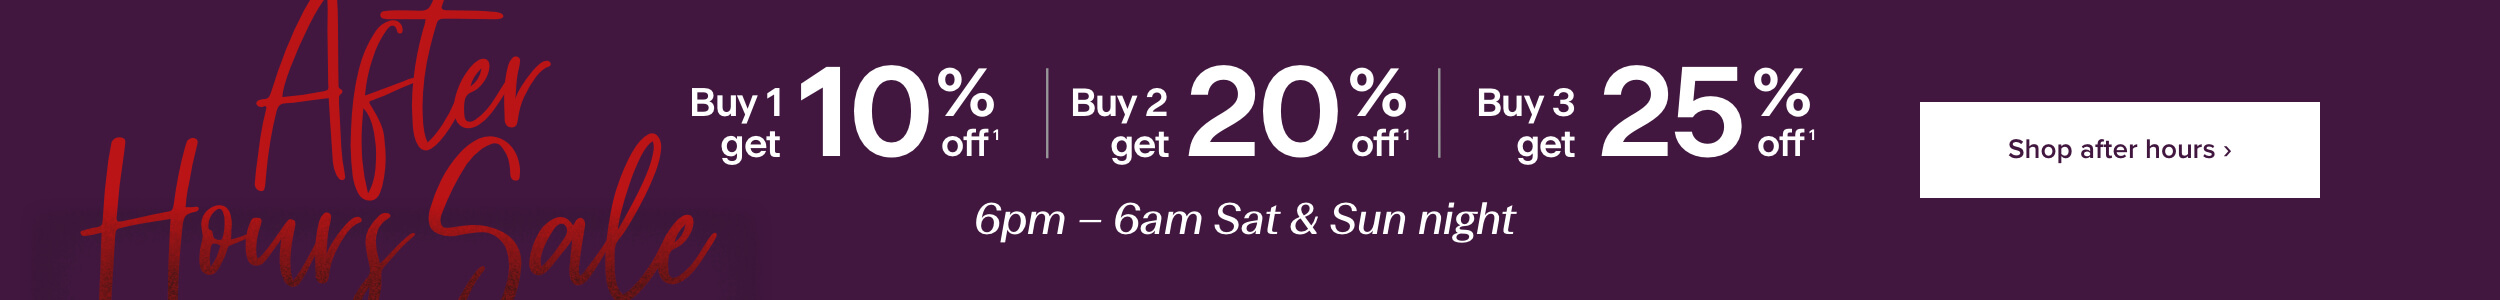 After Hours Sale at Michael Hill - Buy 1 get 10% off, Buy 2 get 20% off, Buy 3 get 25% off, online only